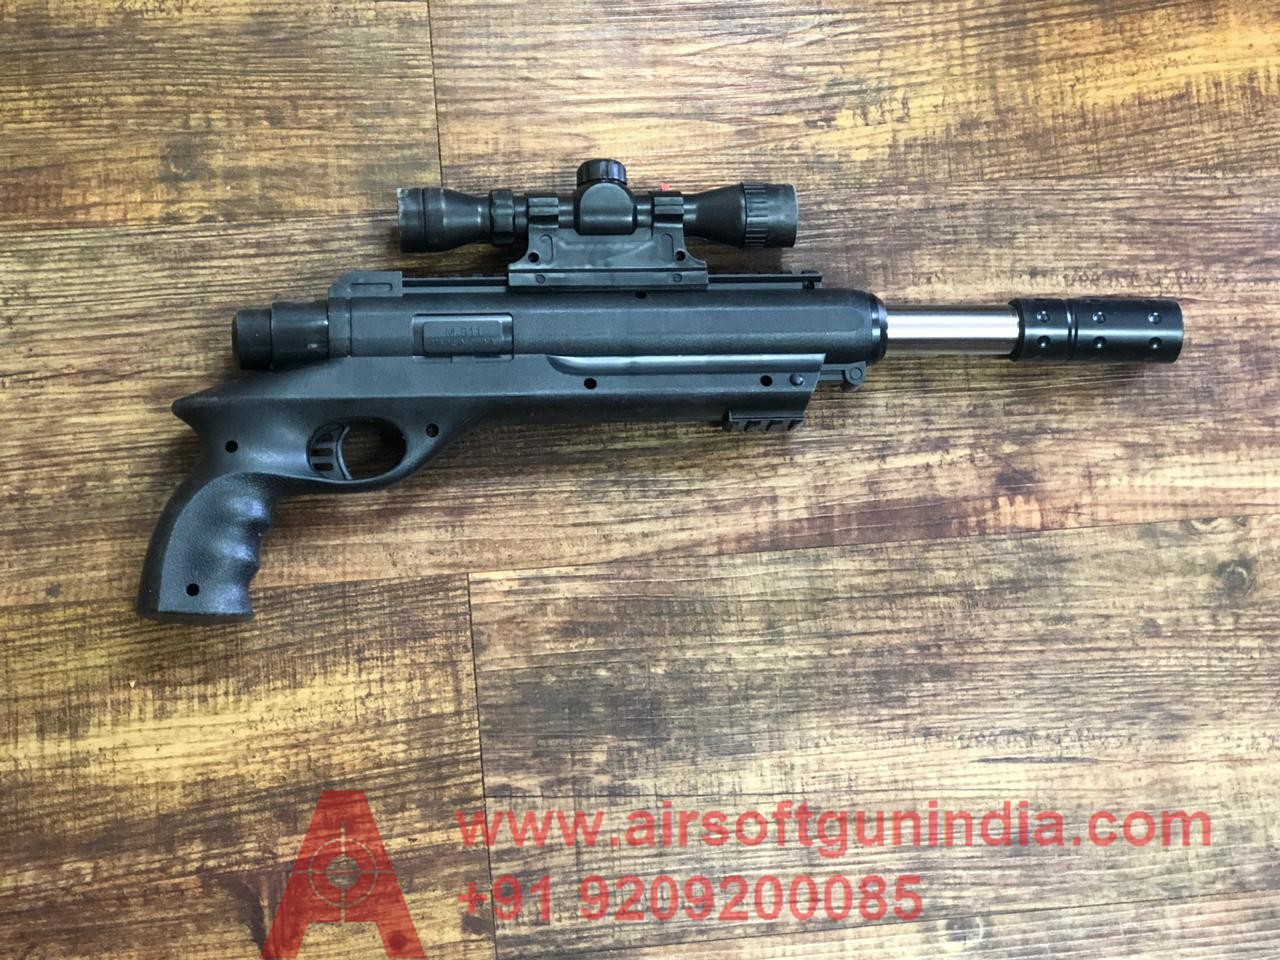 M911 AIRSOFT RIFLE BY AIRSOFT GUN INDIA